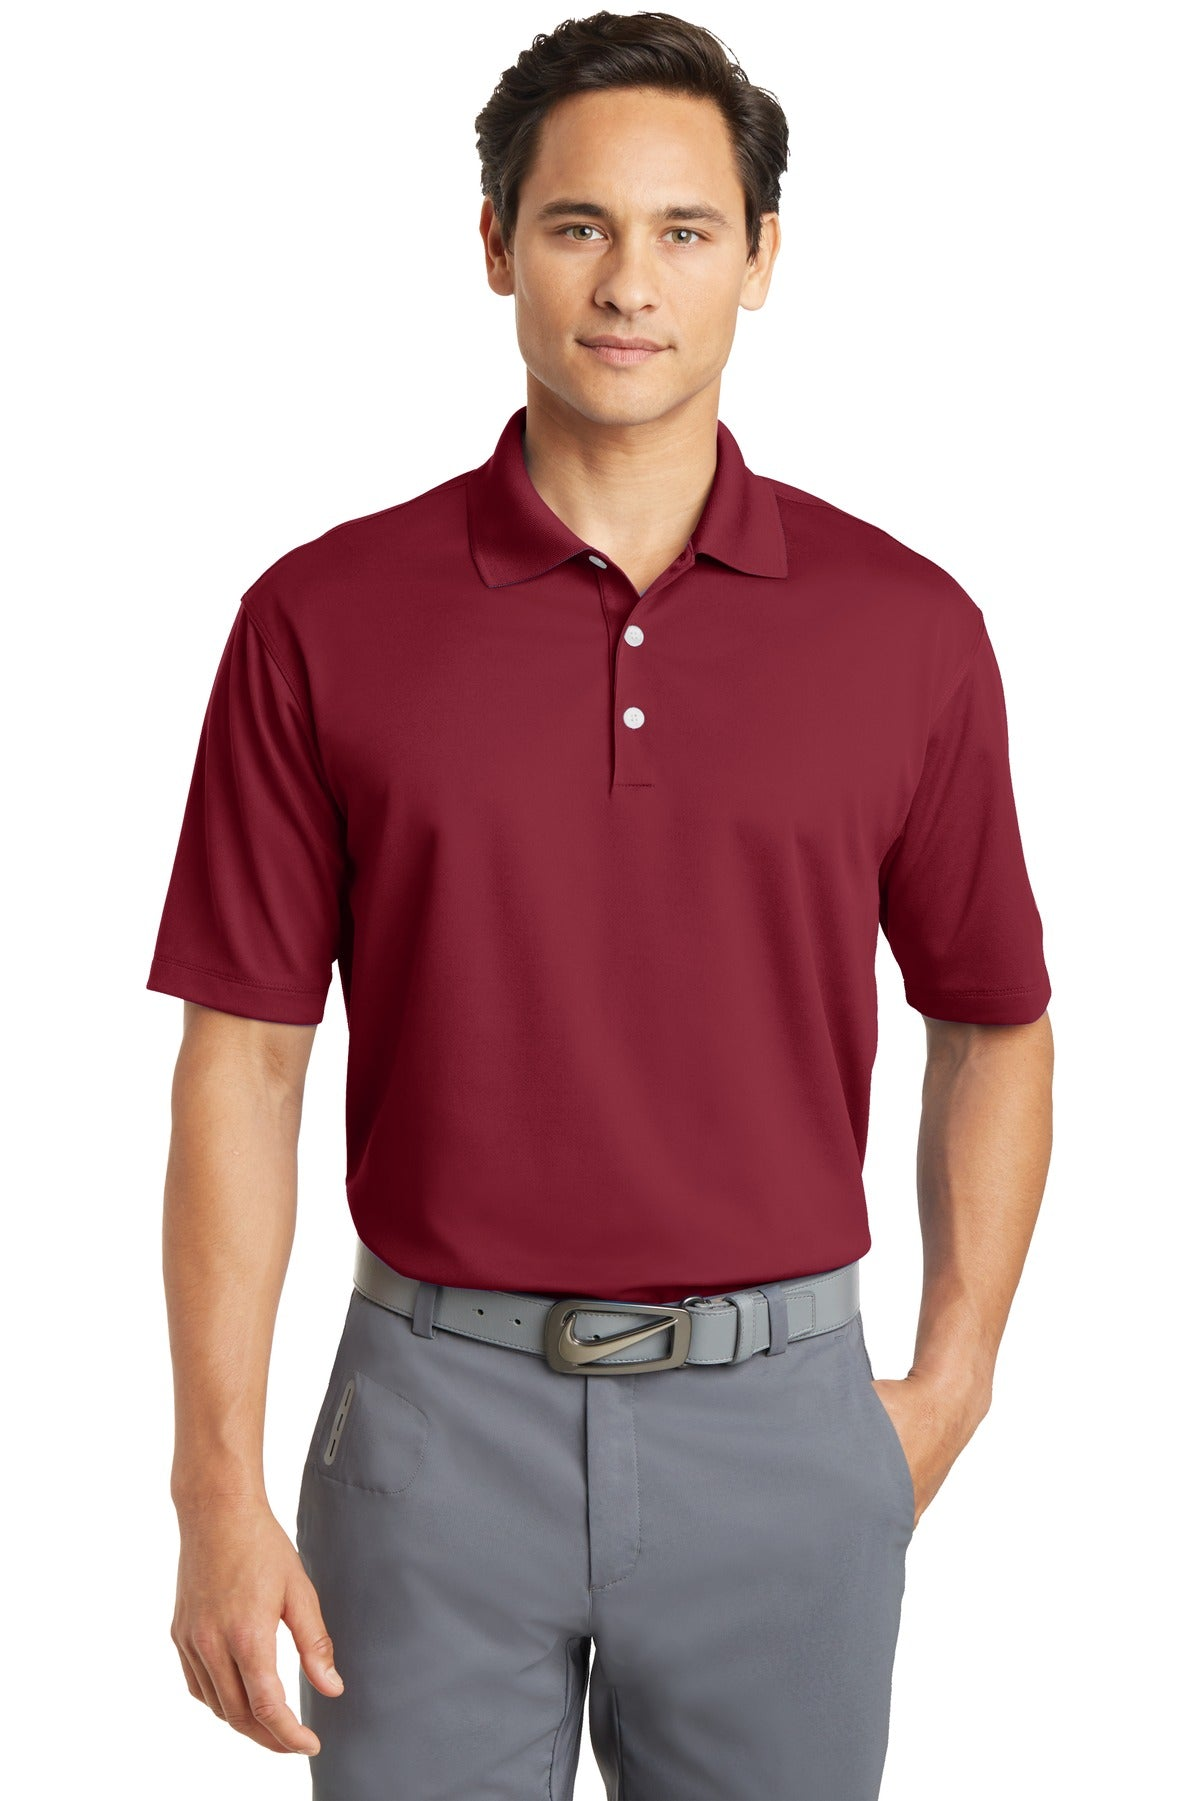 Varsity Red Nike Tall Dri-FIT Micro Pique Polo.